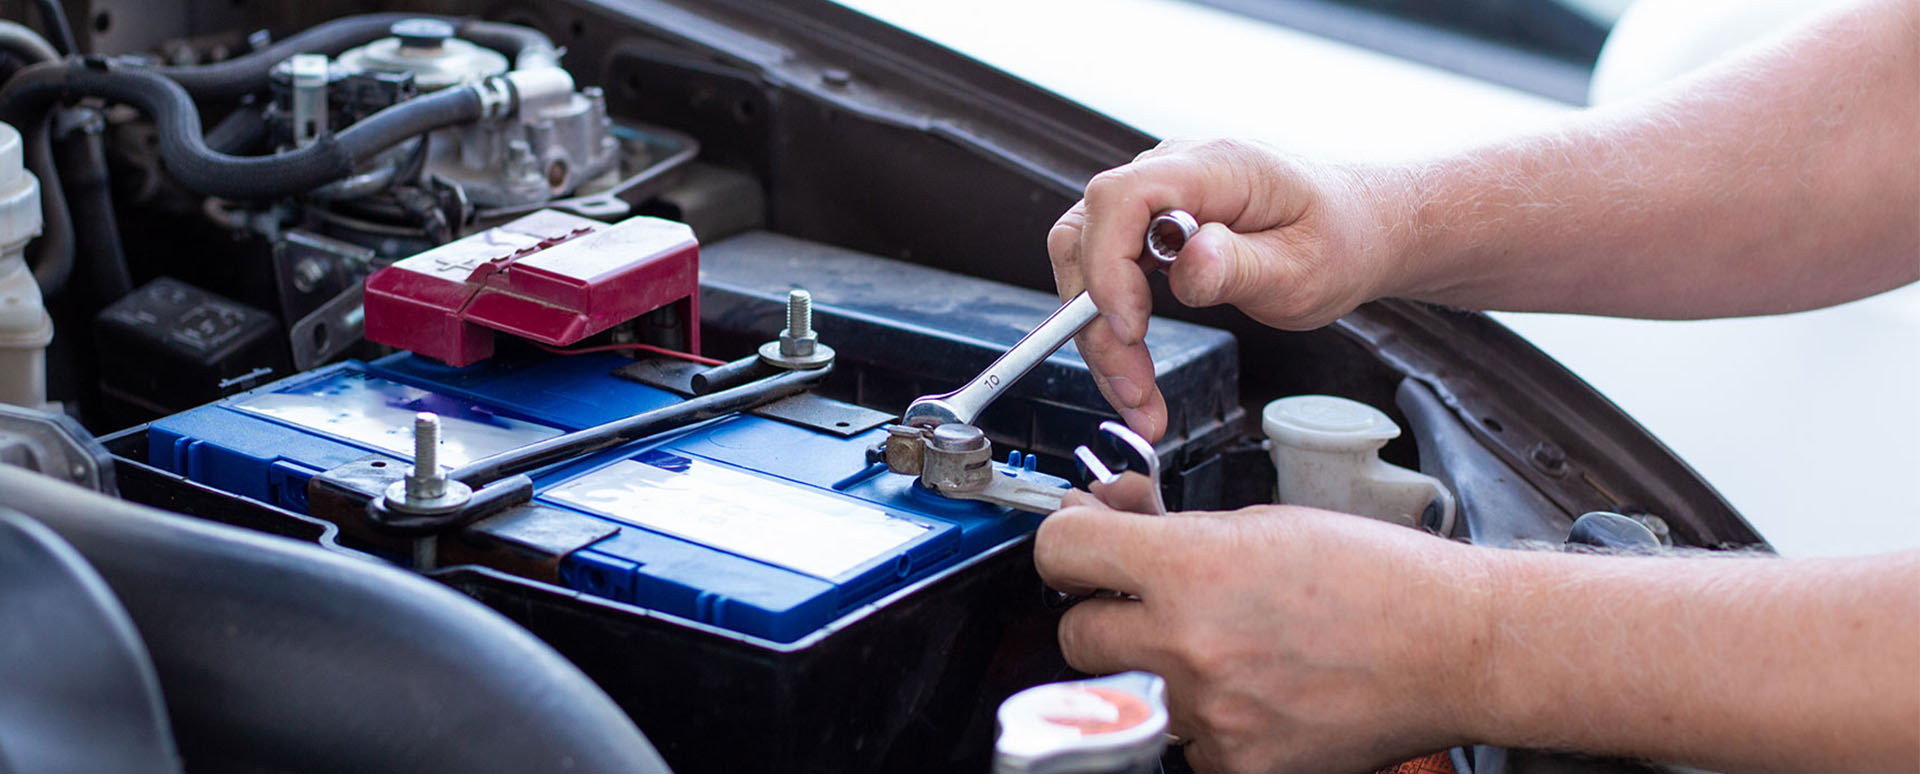 Someone fitting a new battery to a car